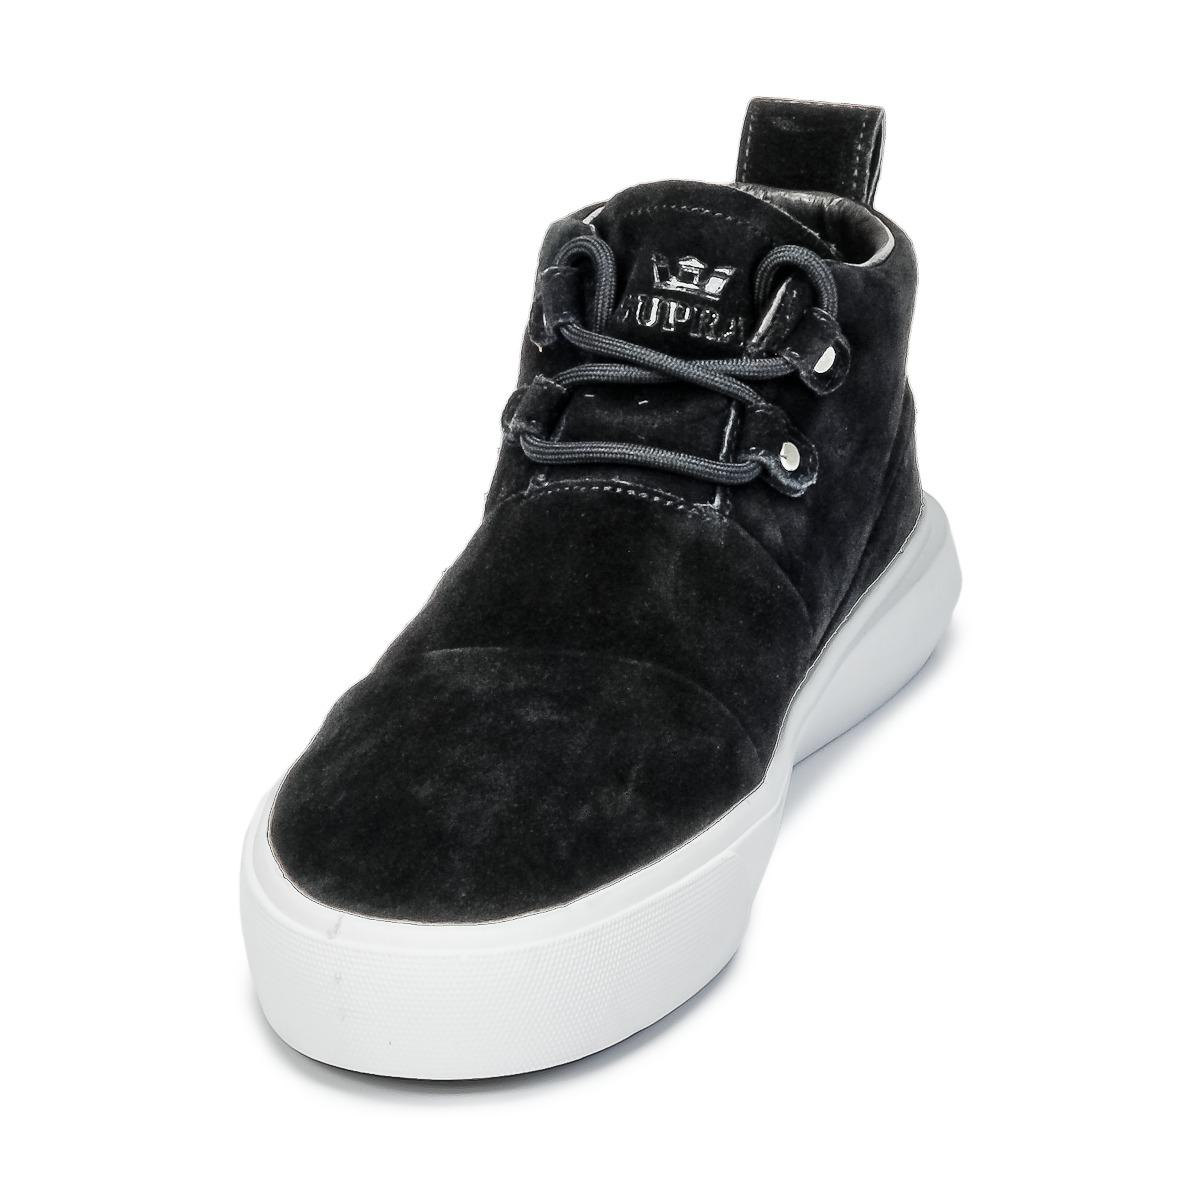 Supra Leather Charles Shoes (high-top Trainers) in Black for Men - Save 21%